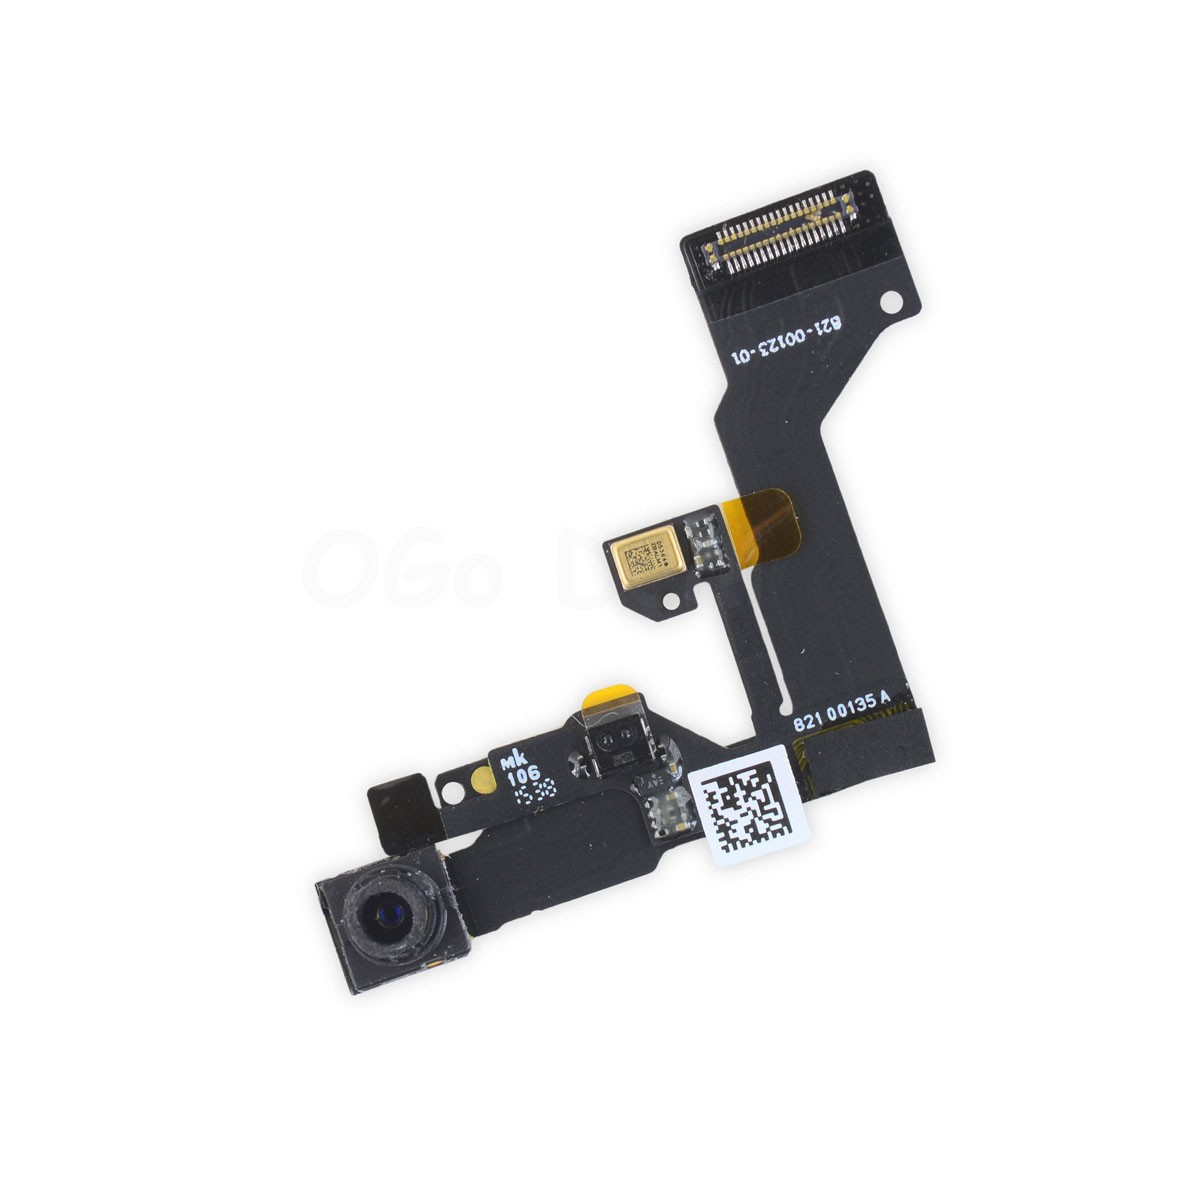 Iphone  Rear Camera Not Working